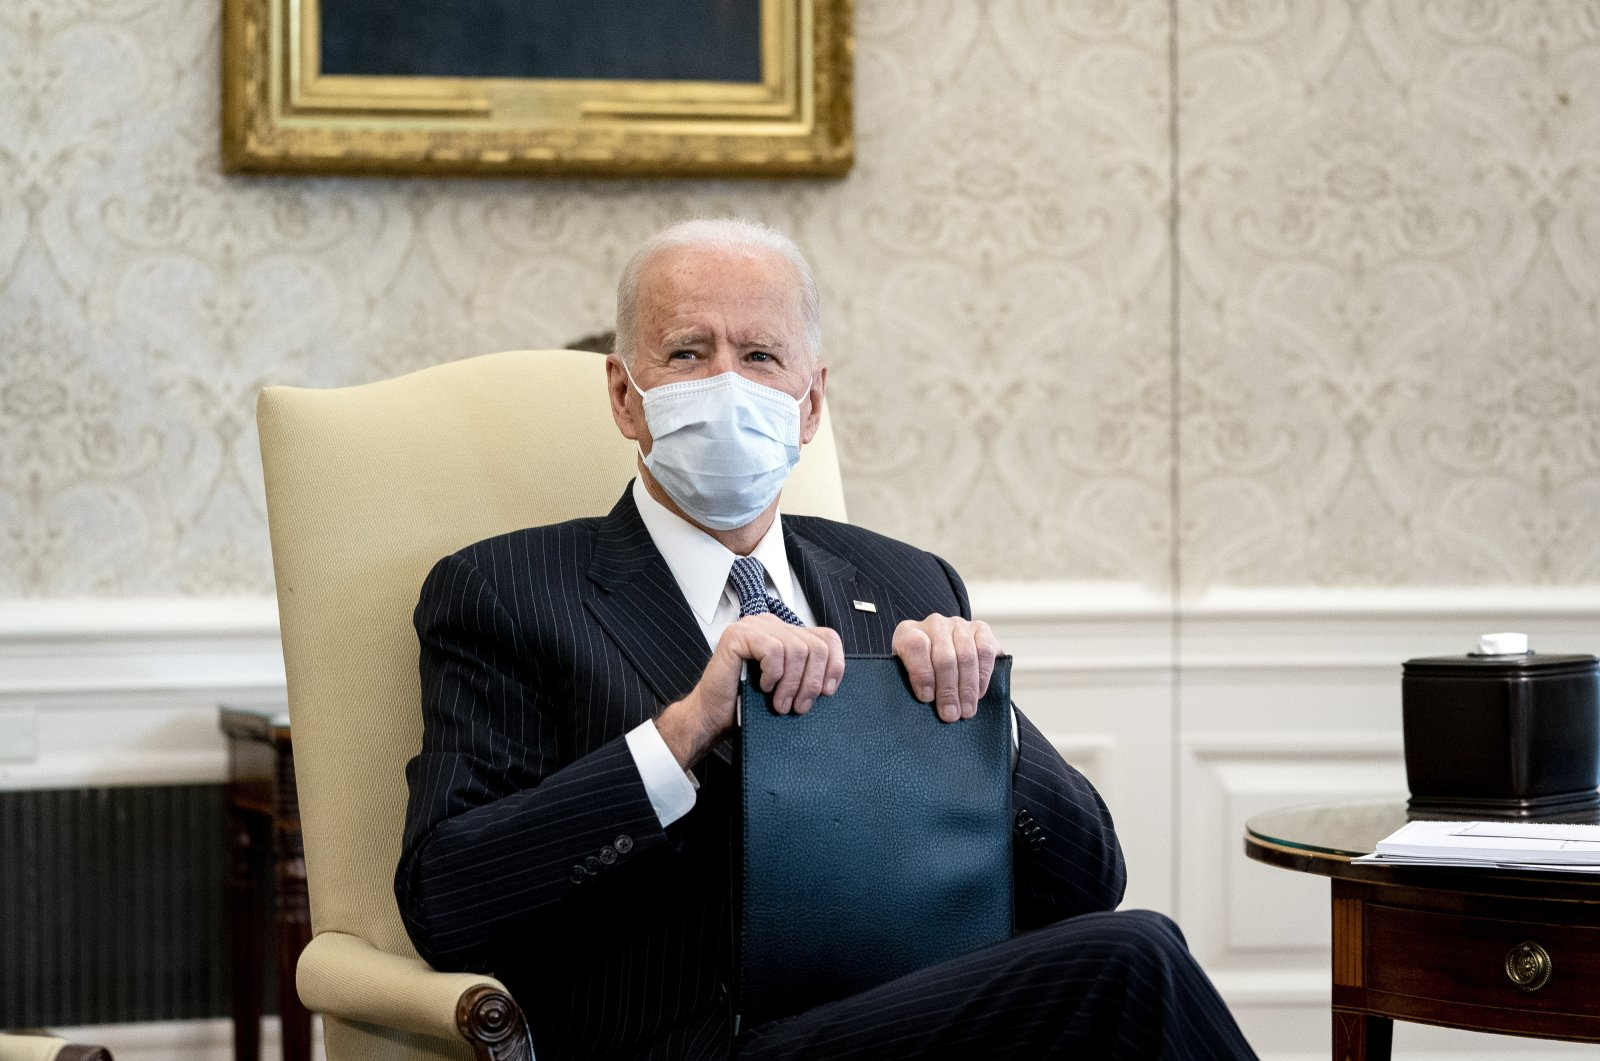 U.S. President Joe Biden wears a protective mask during a meeting with Democratic Senators to discuss the American Rescue Plan in the Oval Office of the White House in Washington, D.C., U.S., Feb. 3, 2021. (EPA Photo)